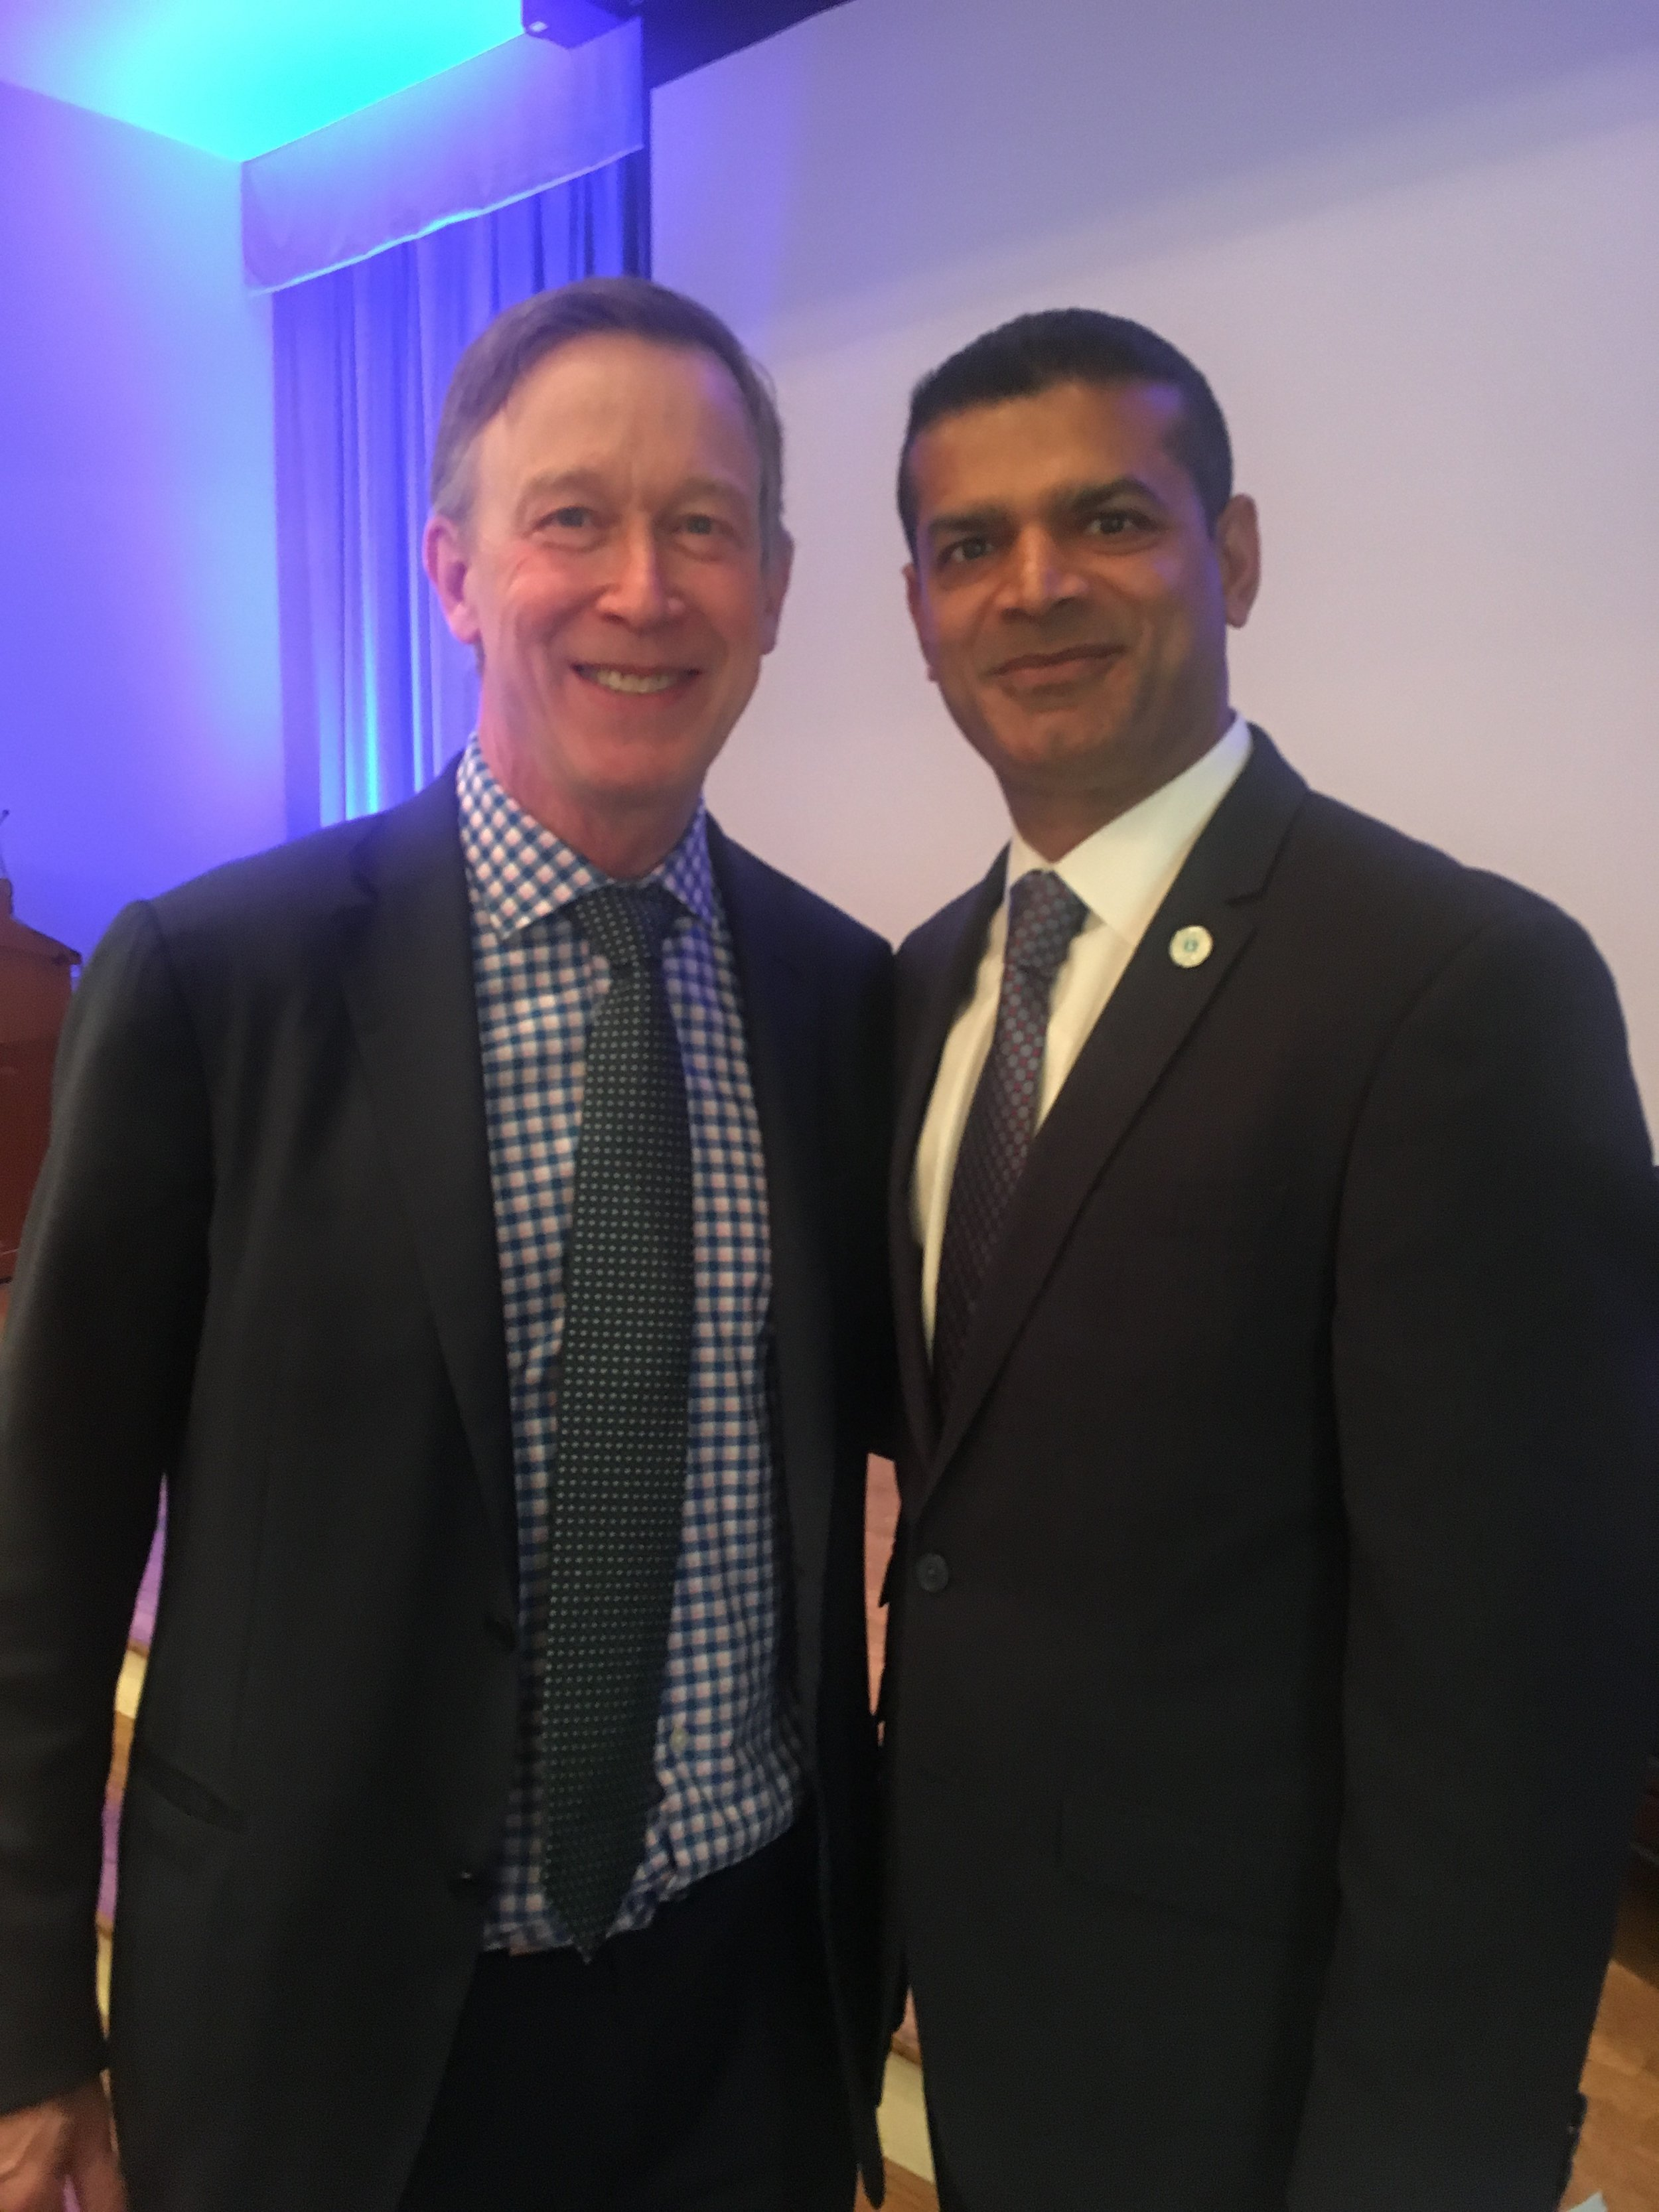 Mr. Nathani with Governor Hon. John Hickenlooper